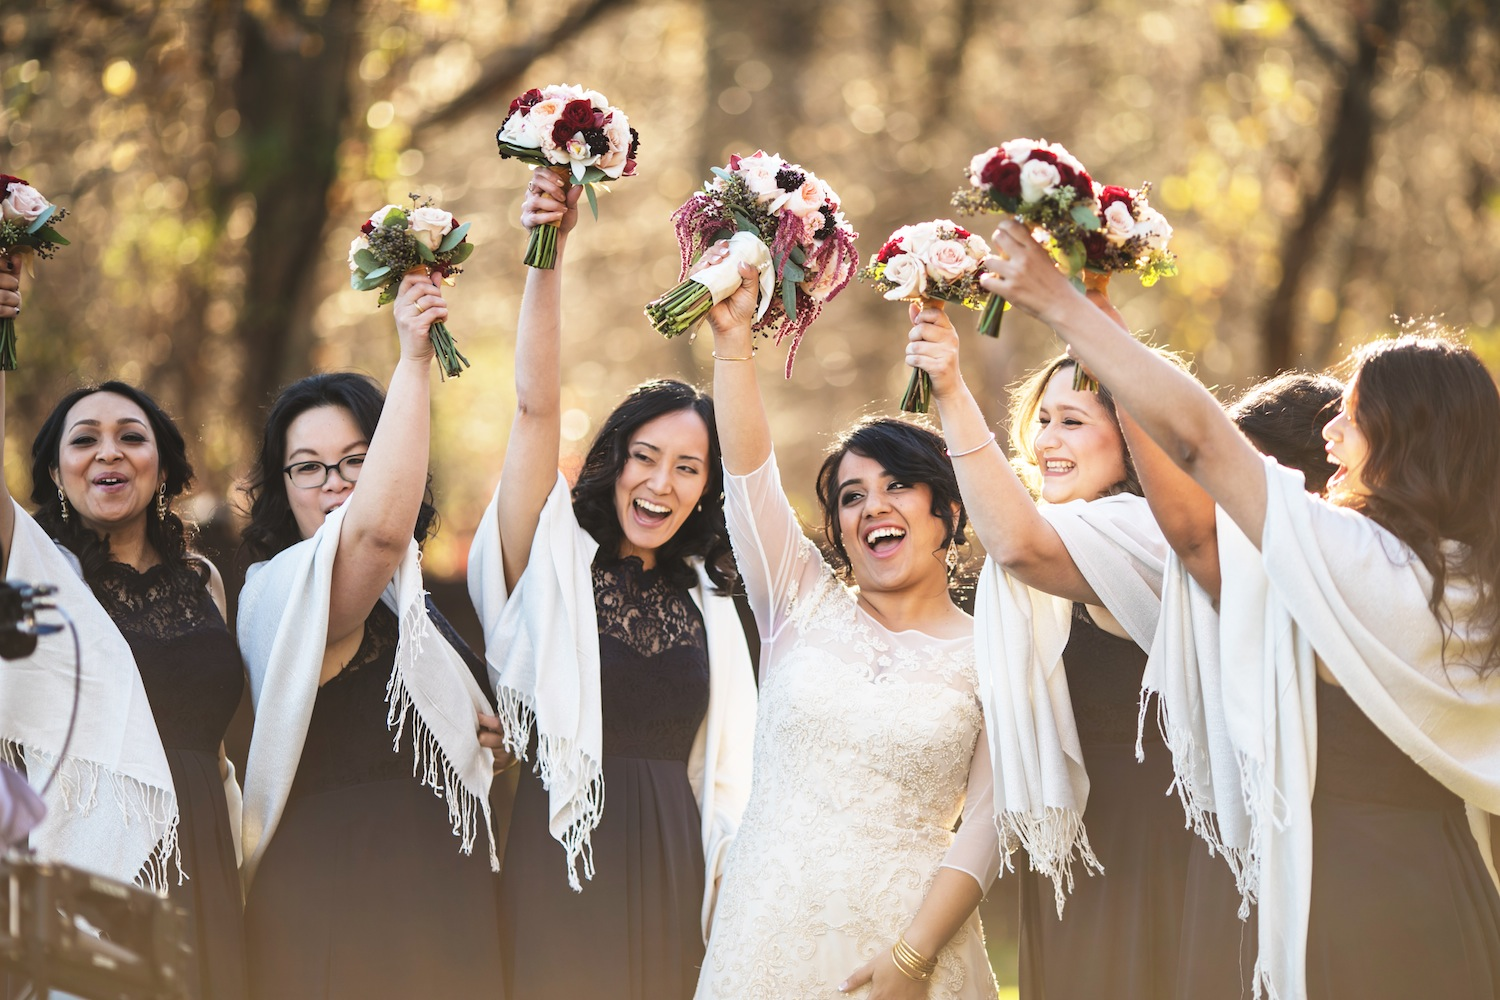 kamana-and-bridesmaids-raising-bouquets-in-air-in-celebration-nj-wedding-photography